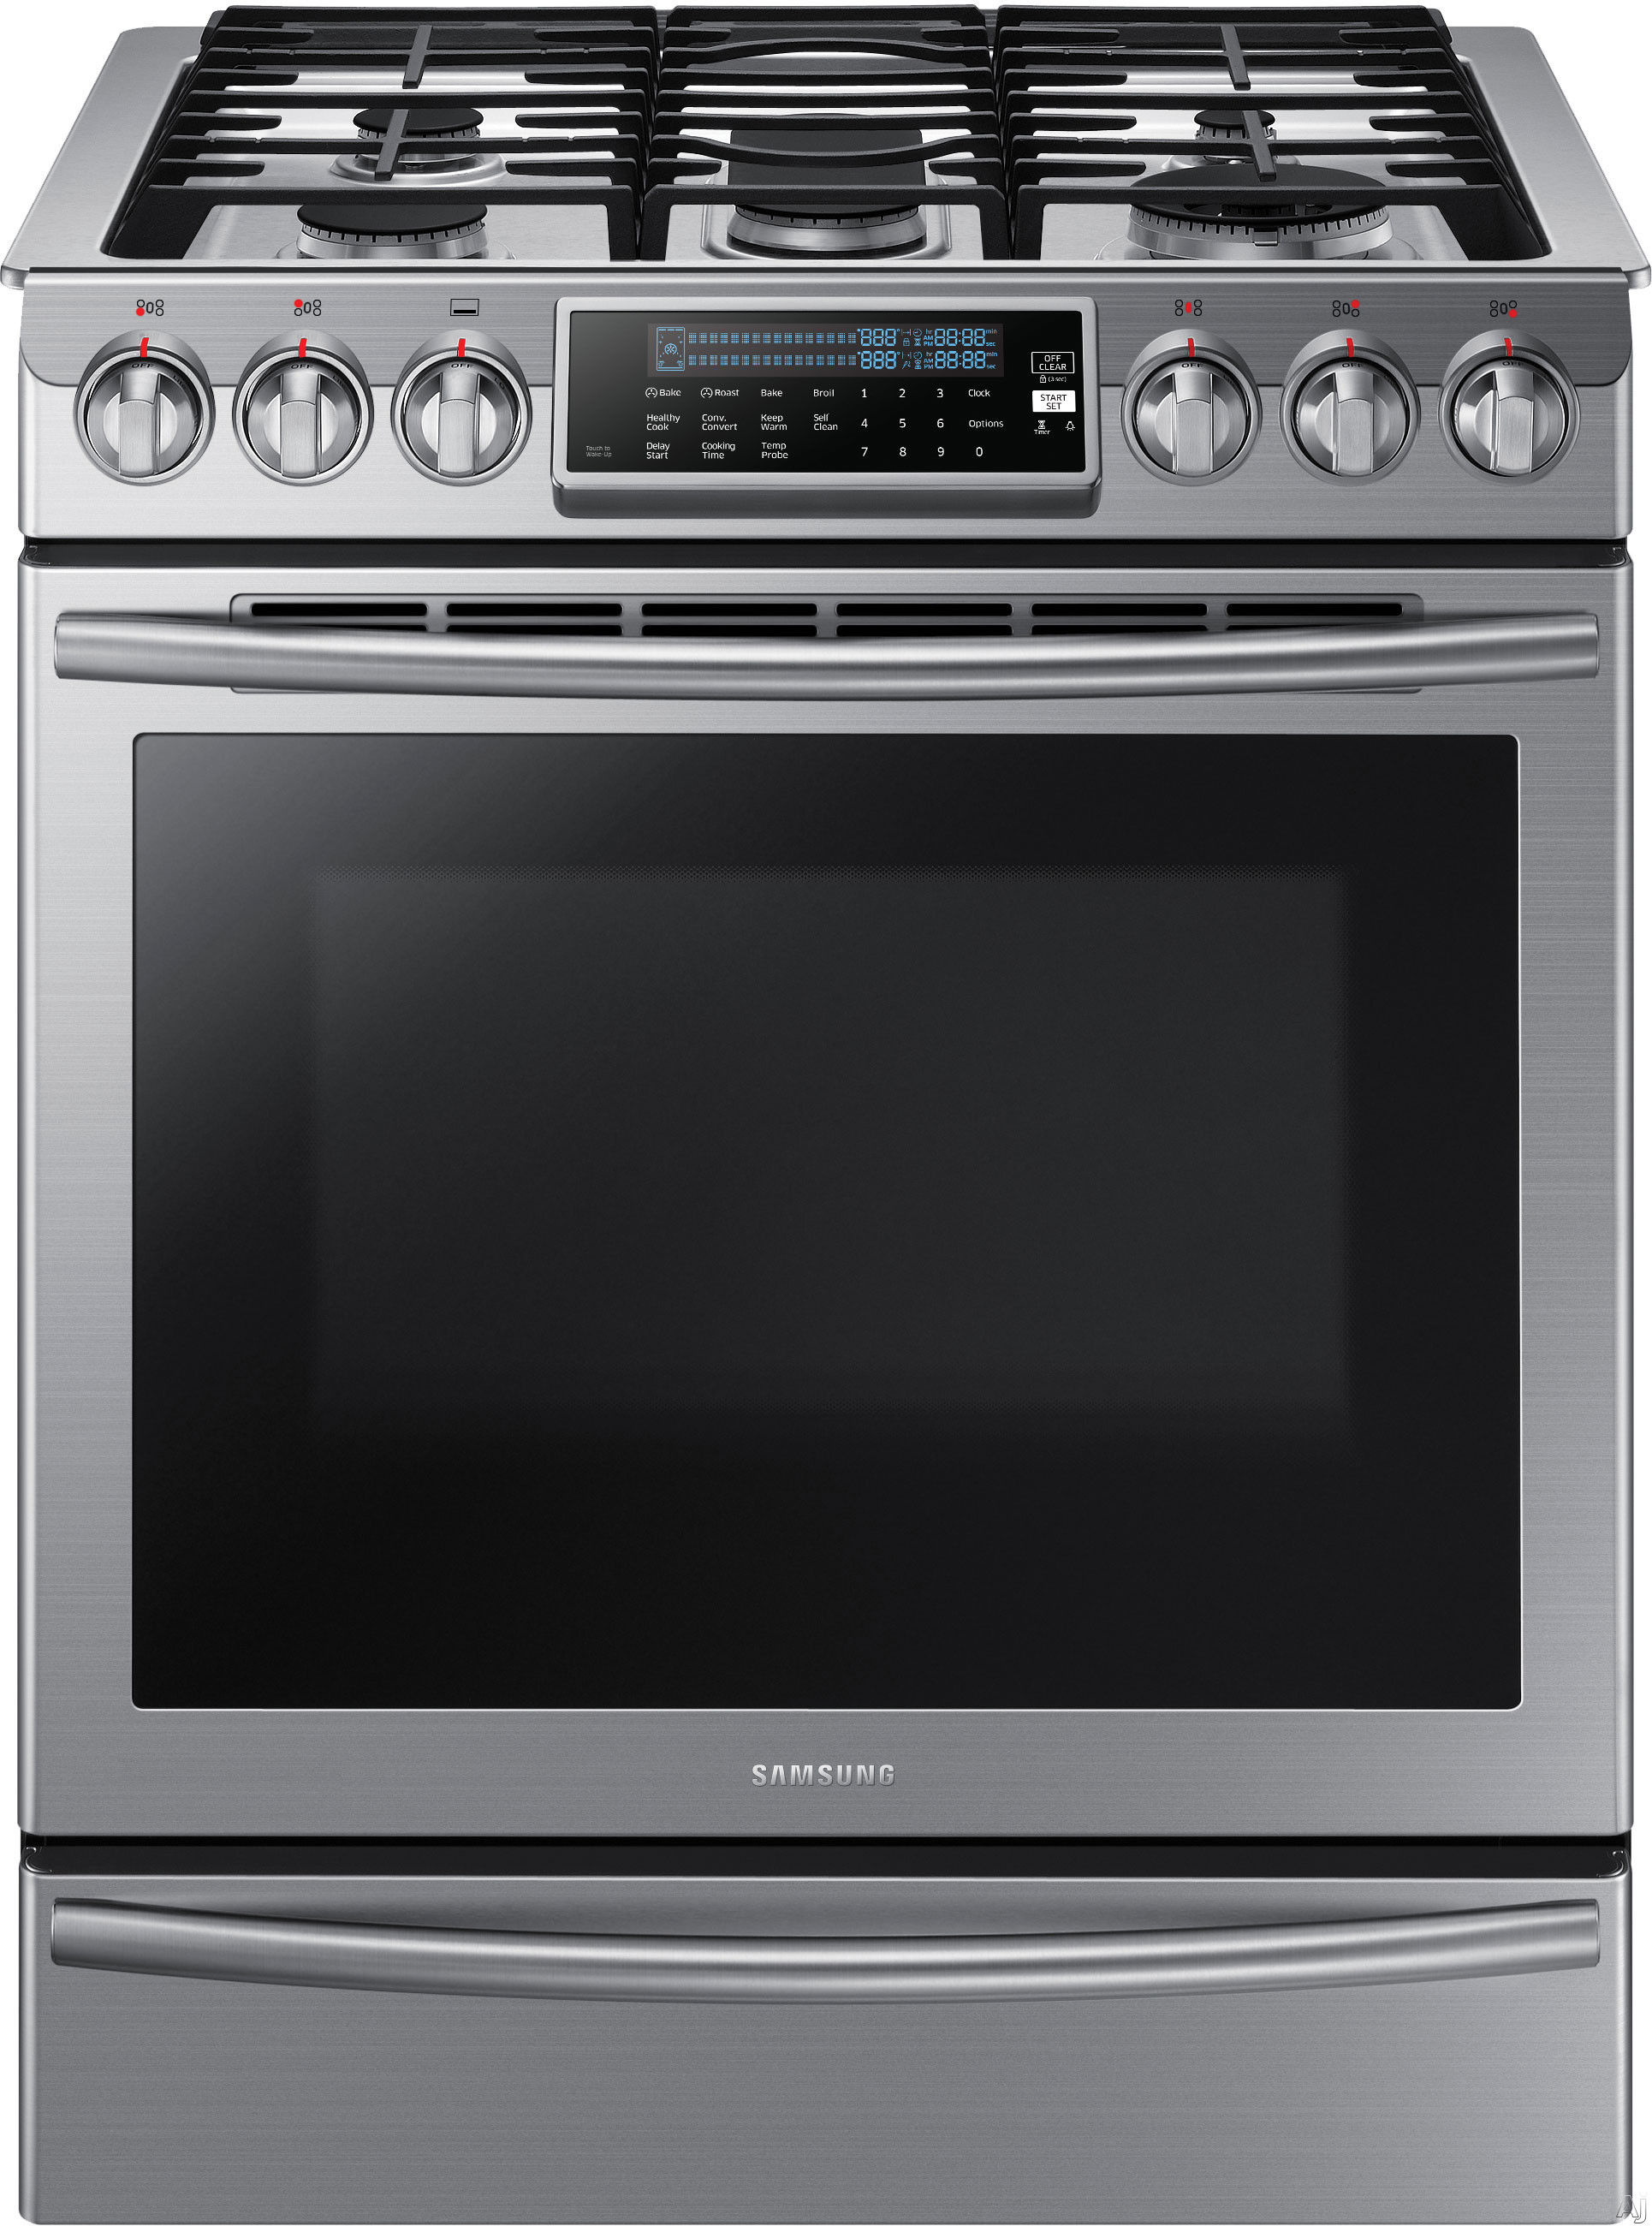 Samsung Nx58h9500ws 30 Slide In Gas Range With 5 Sealed